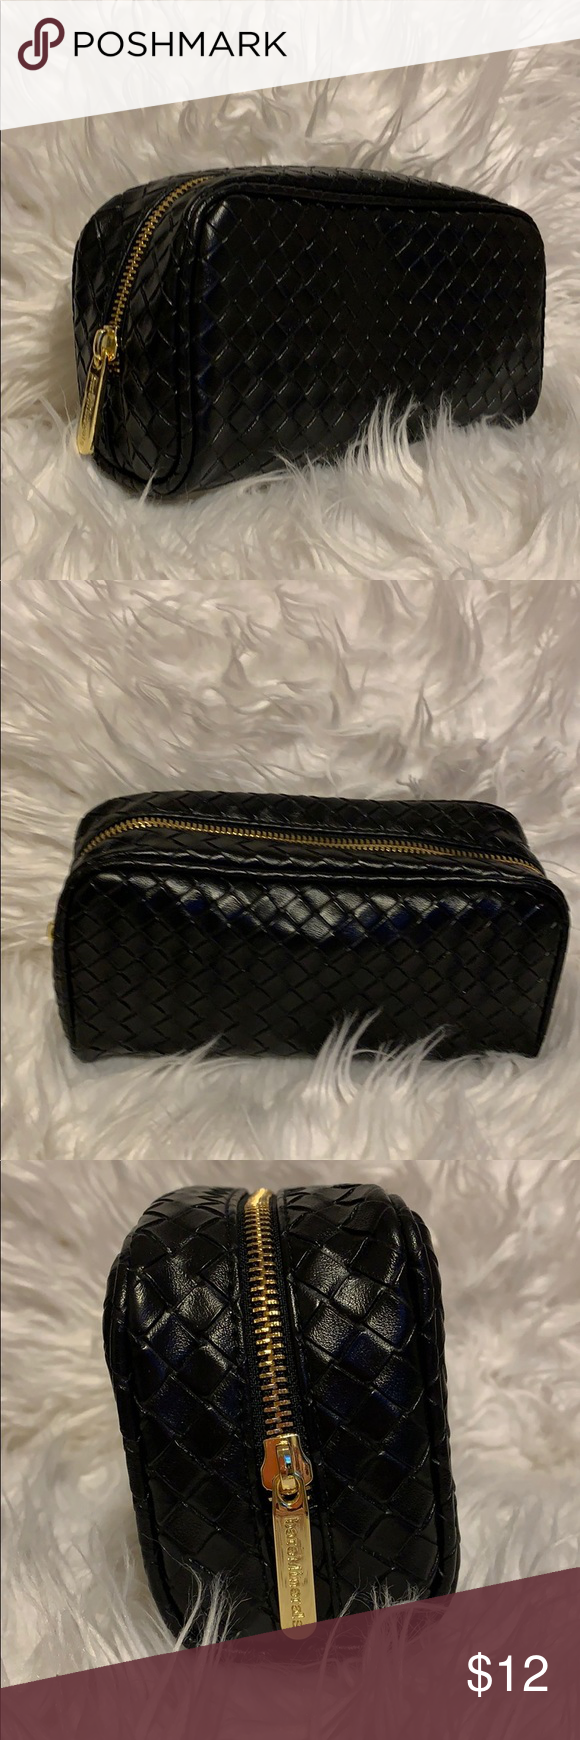 "Bare Minerals make up bag Bare Minerals weave pattern make up bag! Vegan Leather black with gold zipper. New with out tag. 8"" long 4 1/2""tall 2 1/2"" deep. NWOT bareMinerals Bags Cosmetic Bags & Cases #mineralcosmetics"